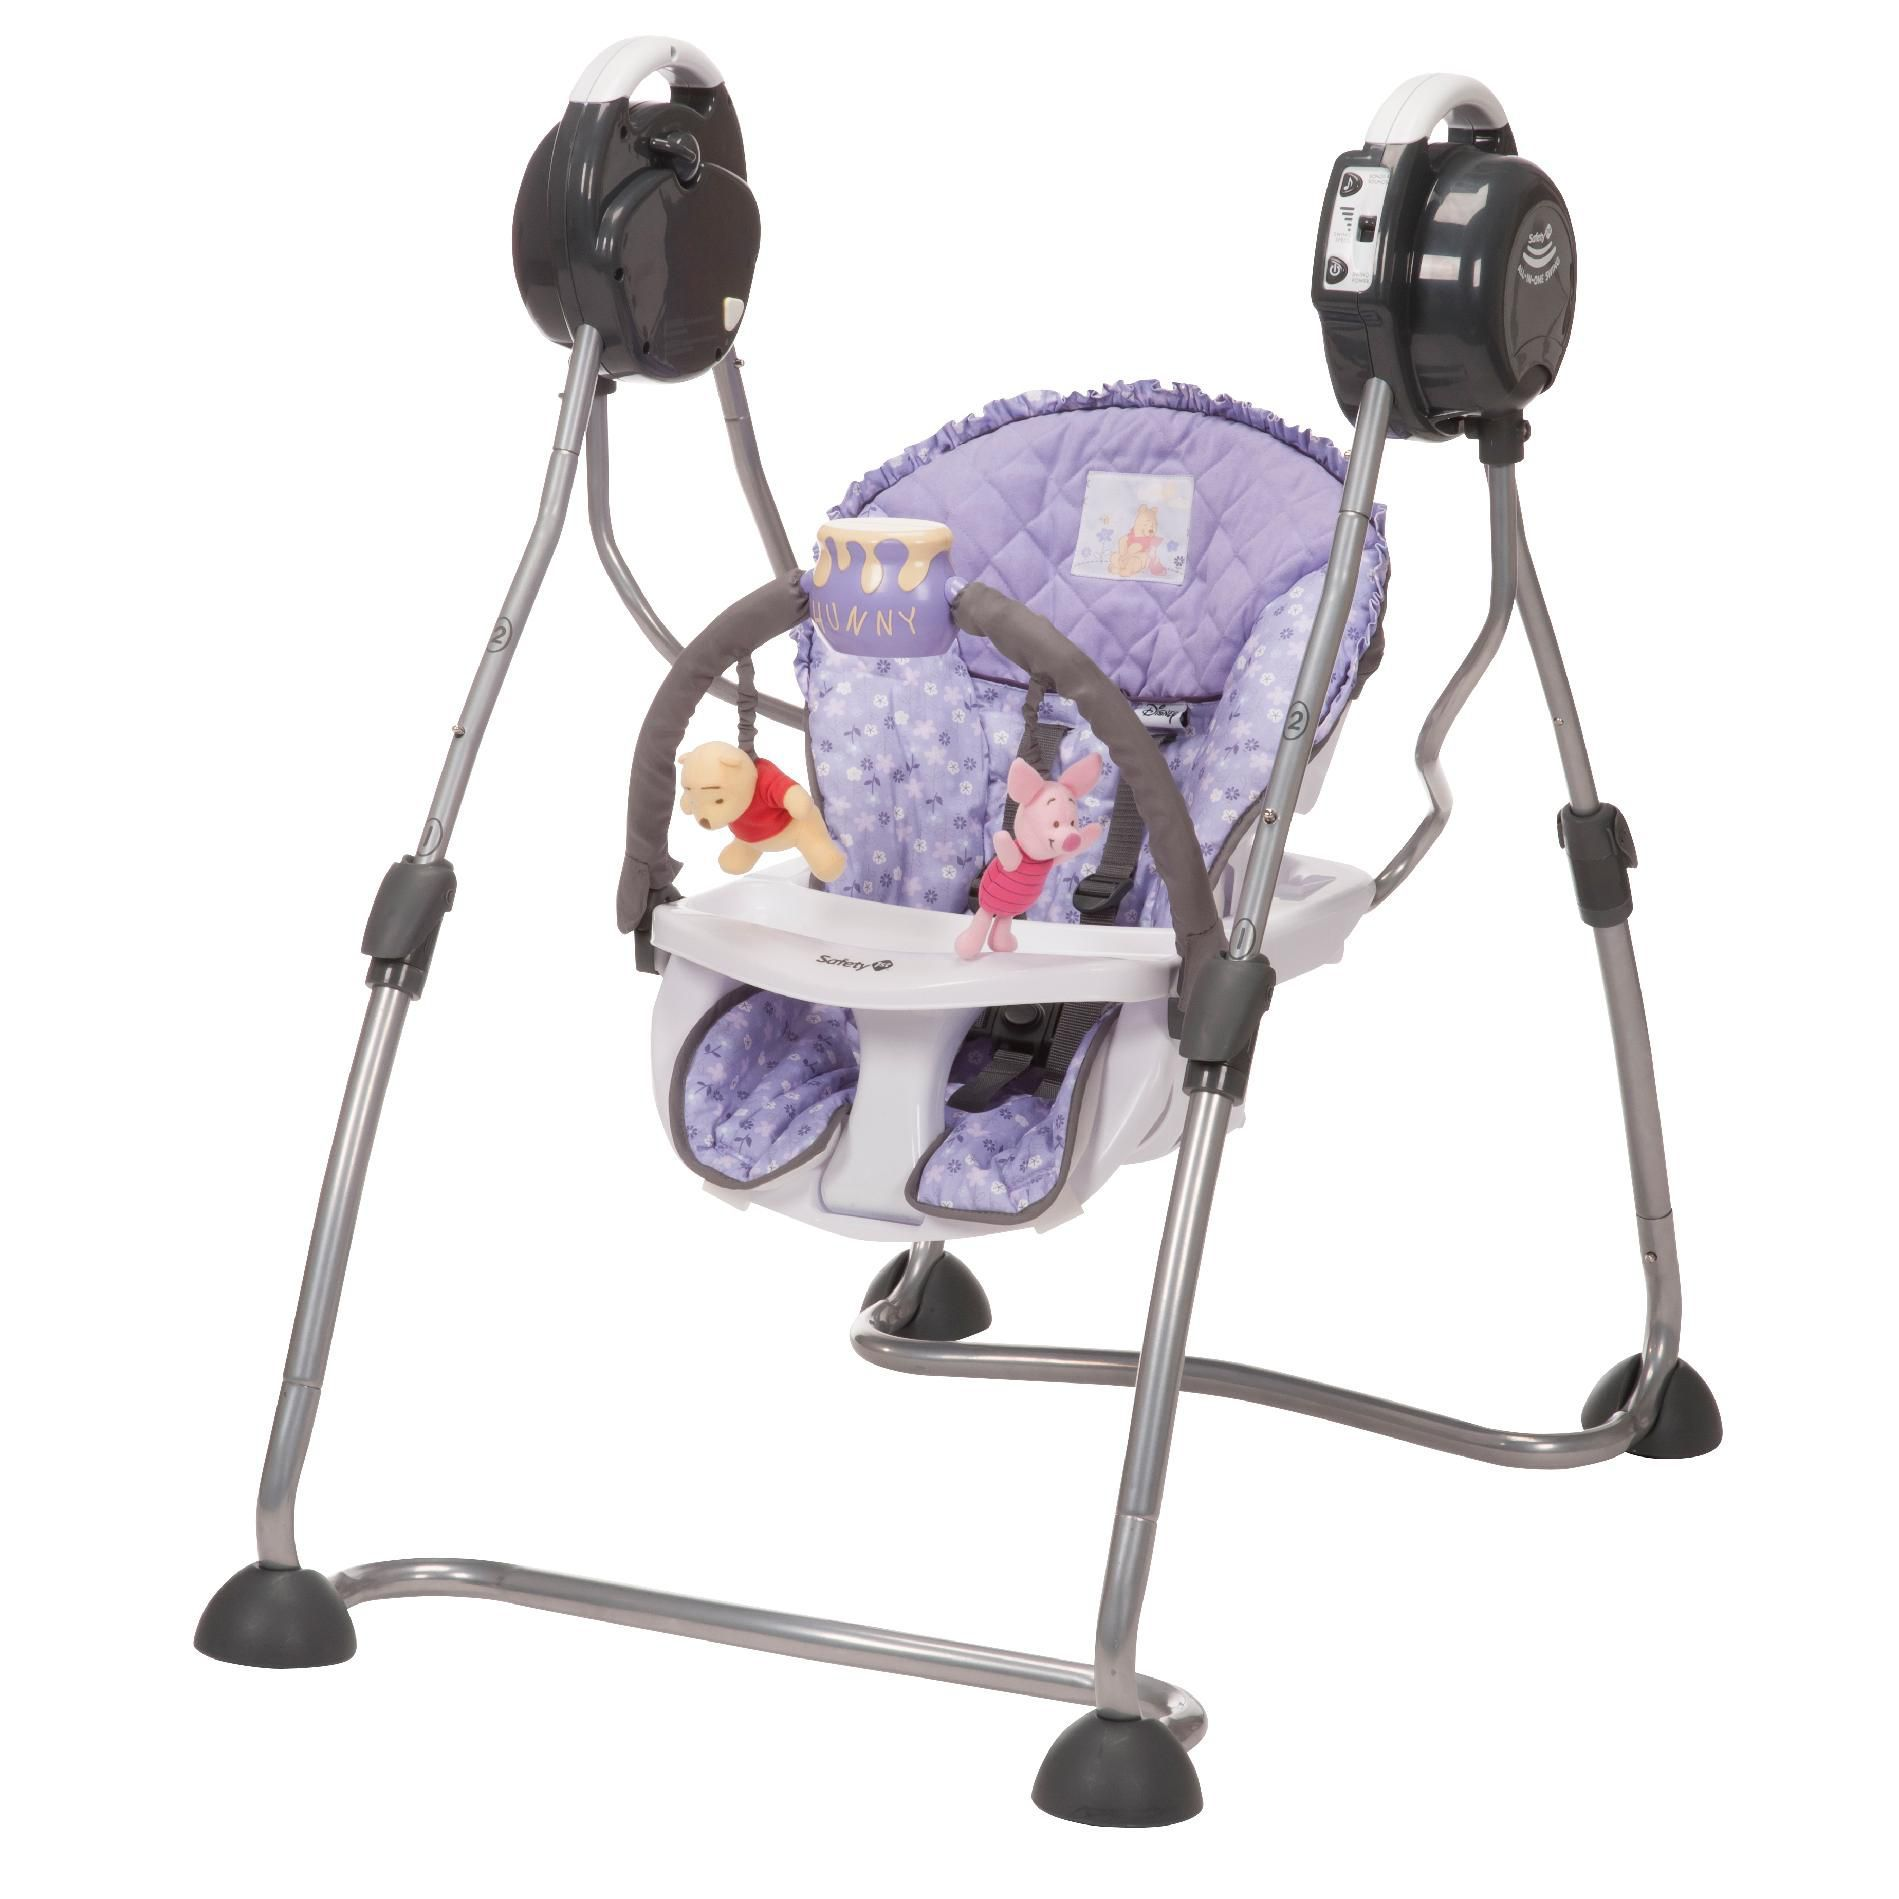 My number one choice for lucileus set winnie the pooh baby swing